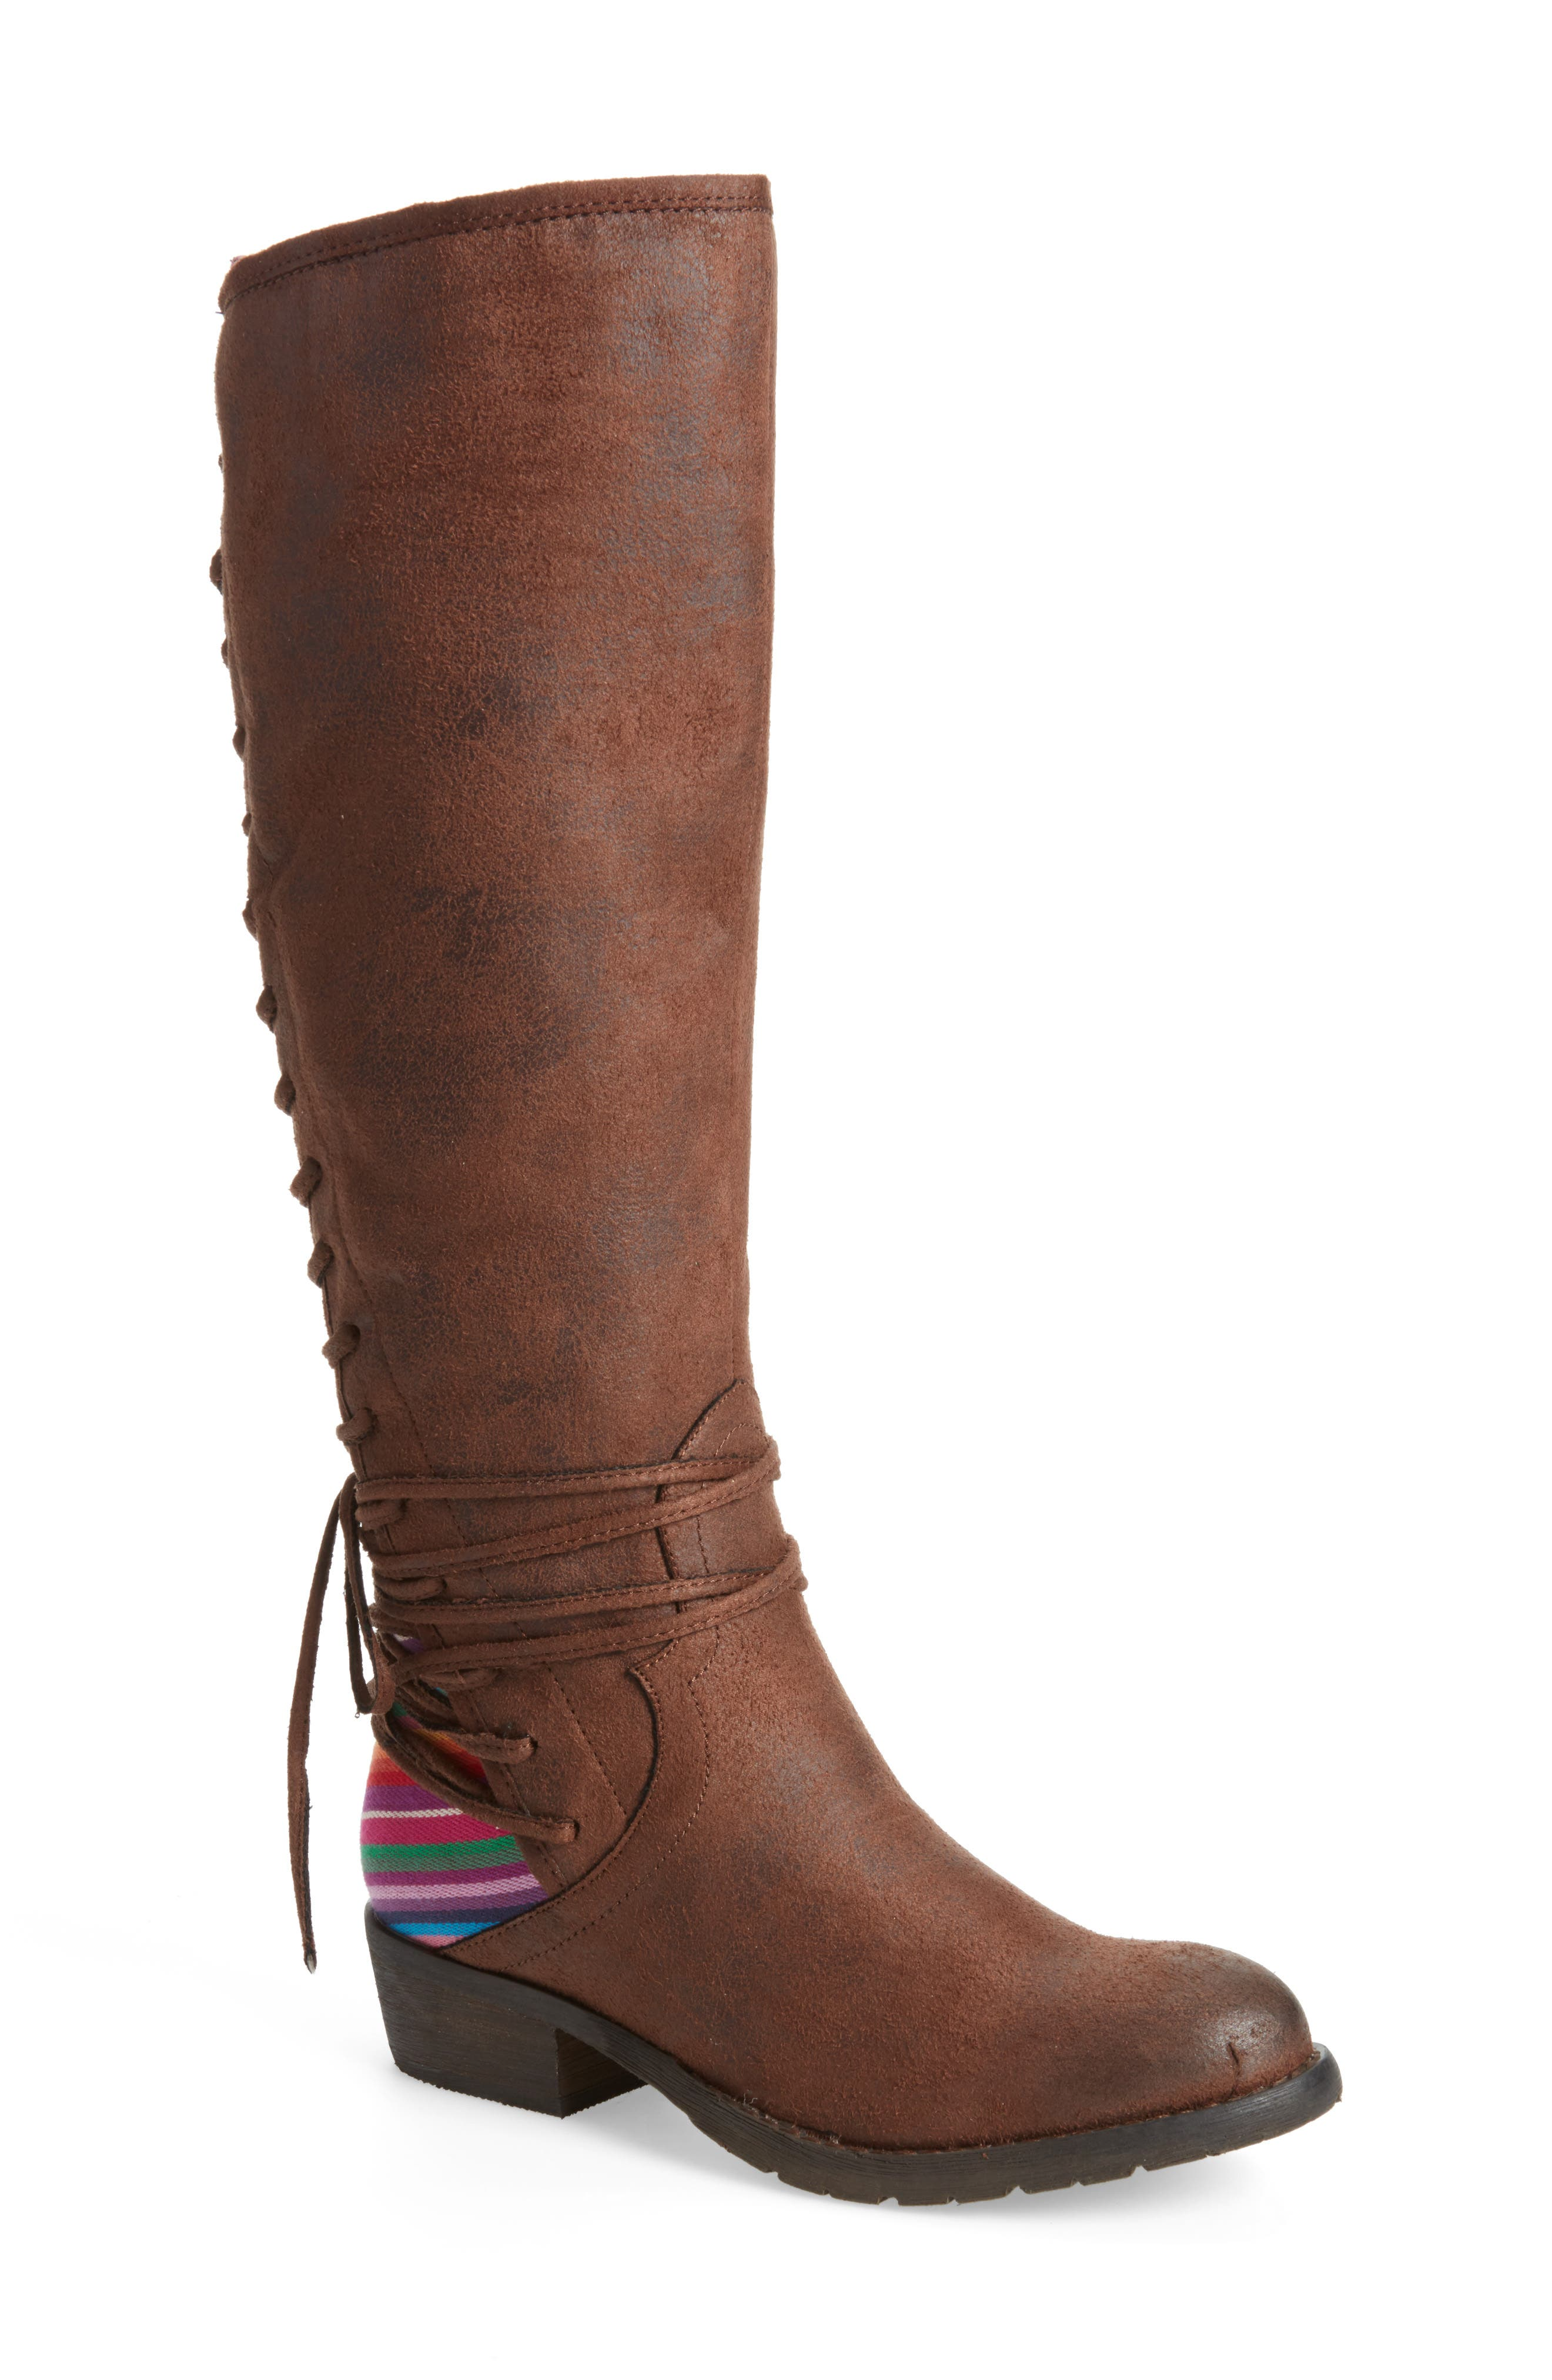 Marcel Corseted Knee High Boot,                         Main,                         color, Serape